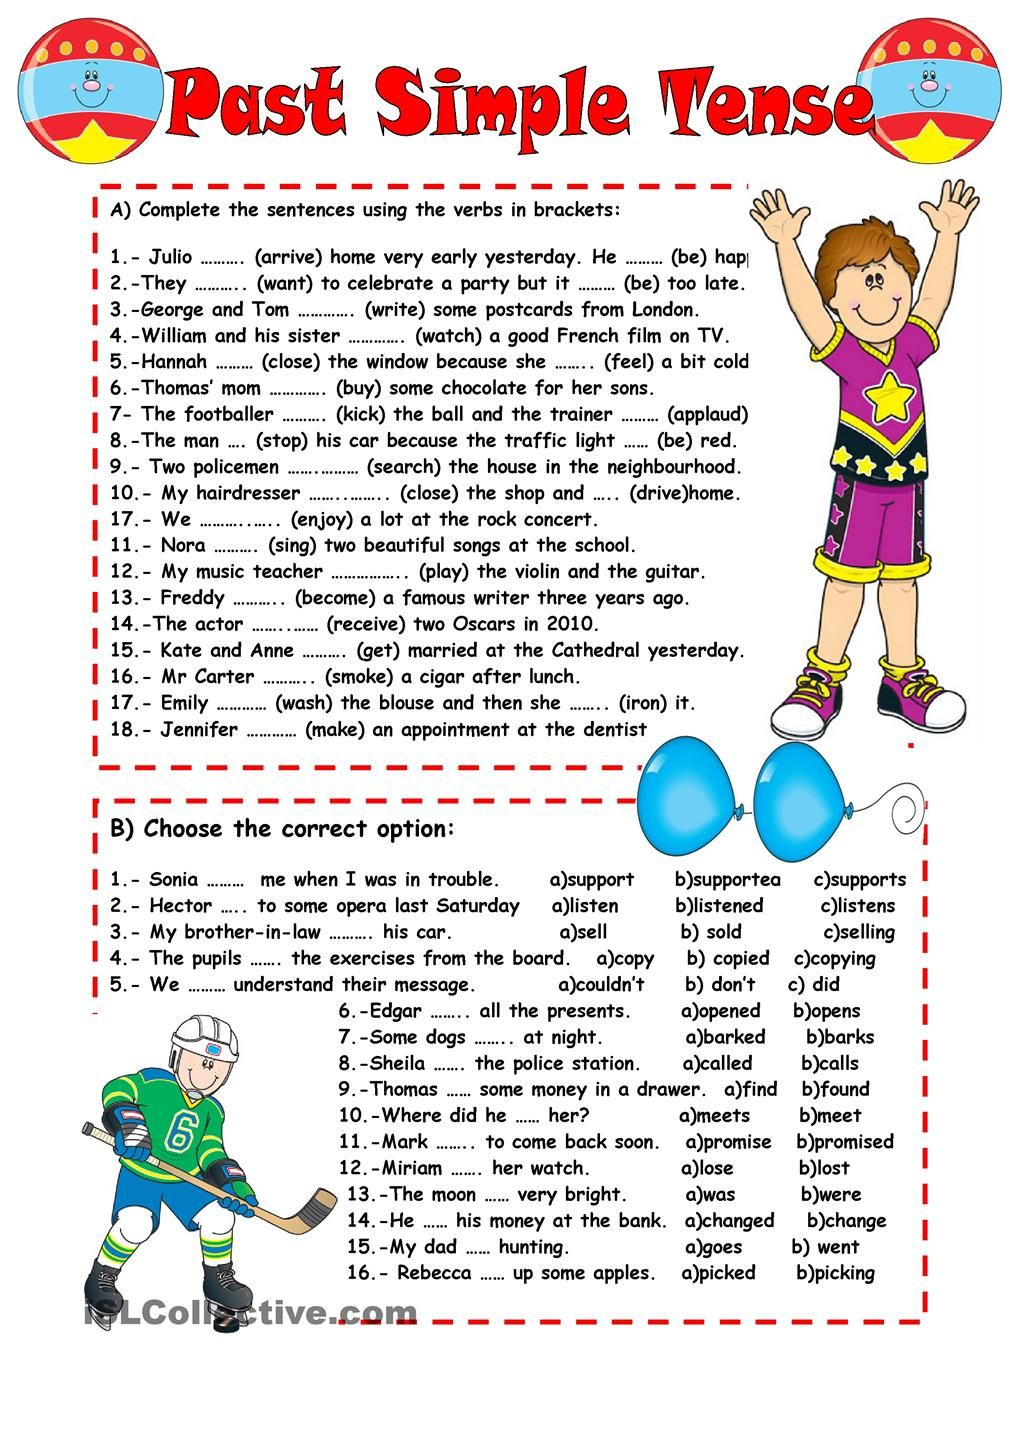 PAST SIMPLE TENSE English grammar worksheets, English